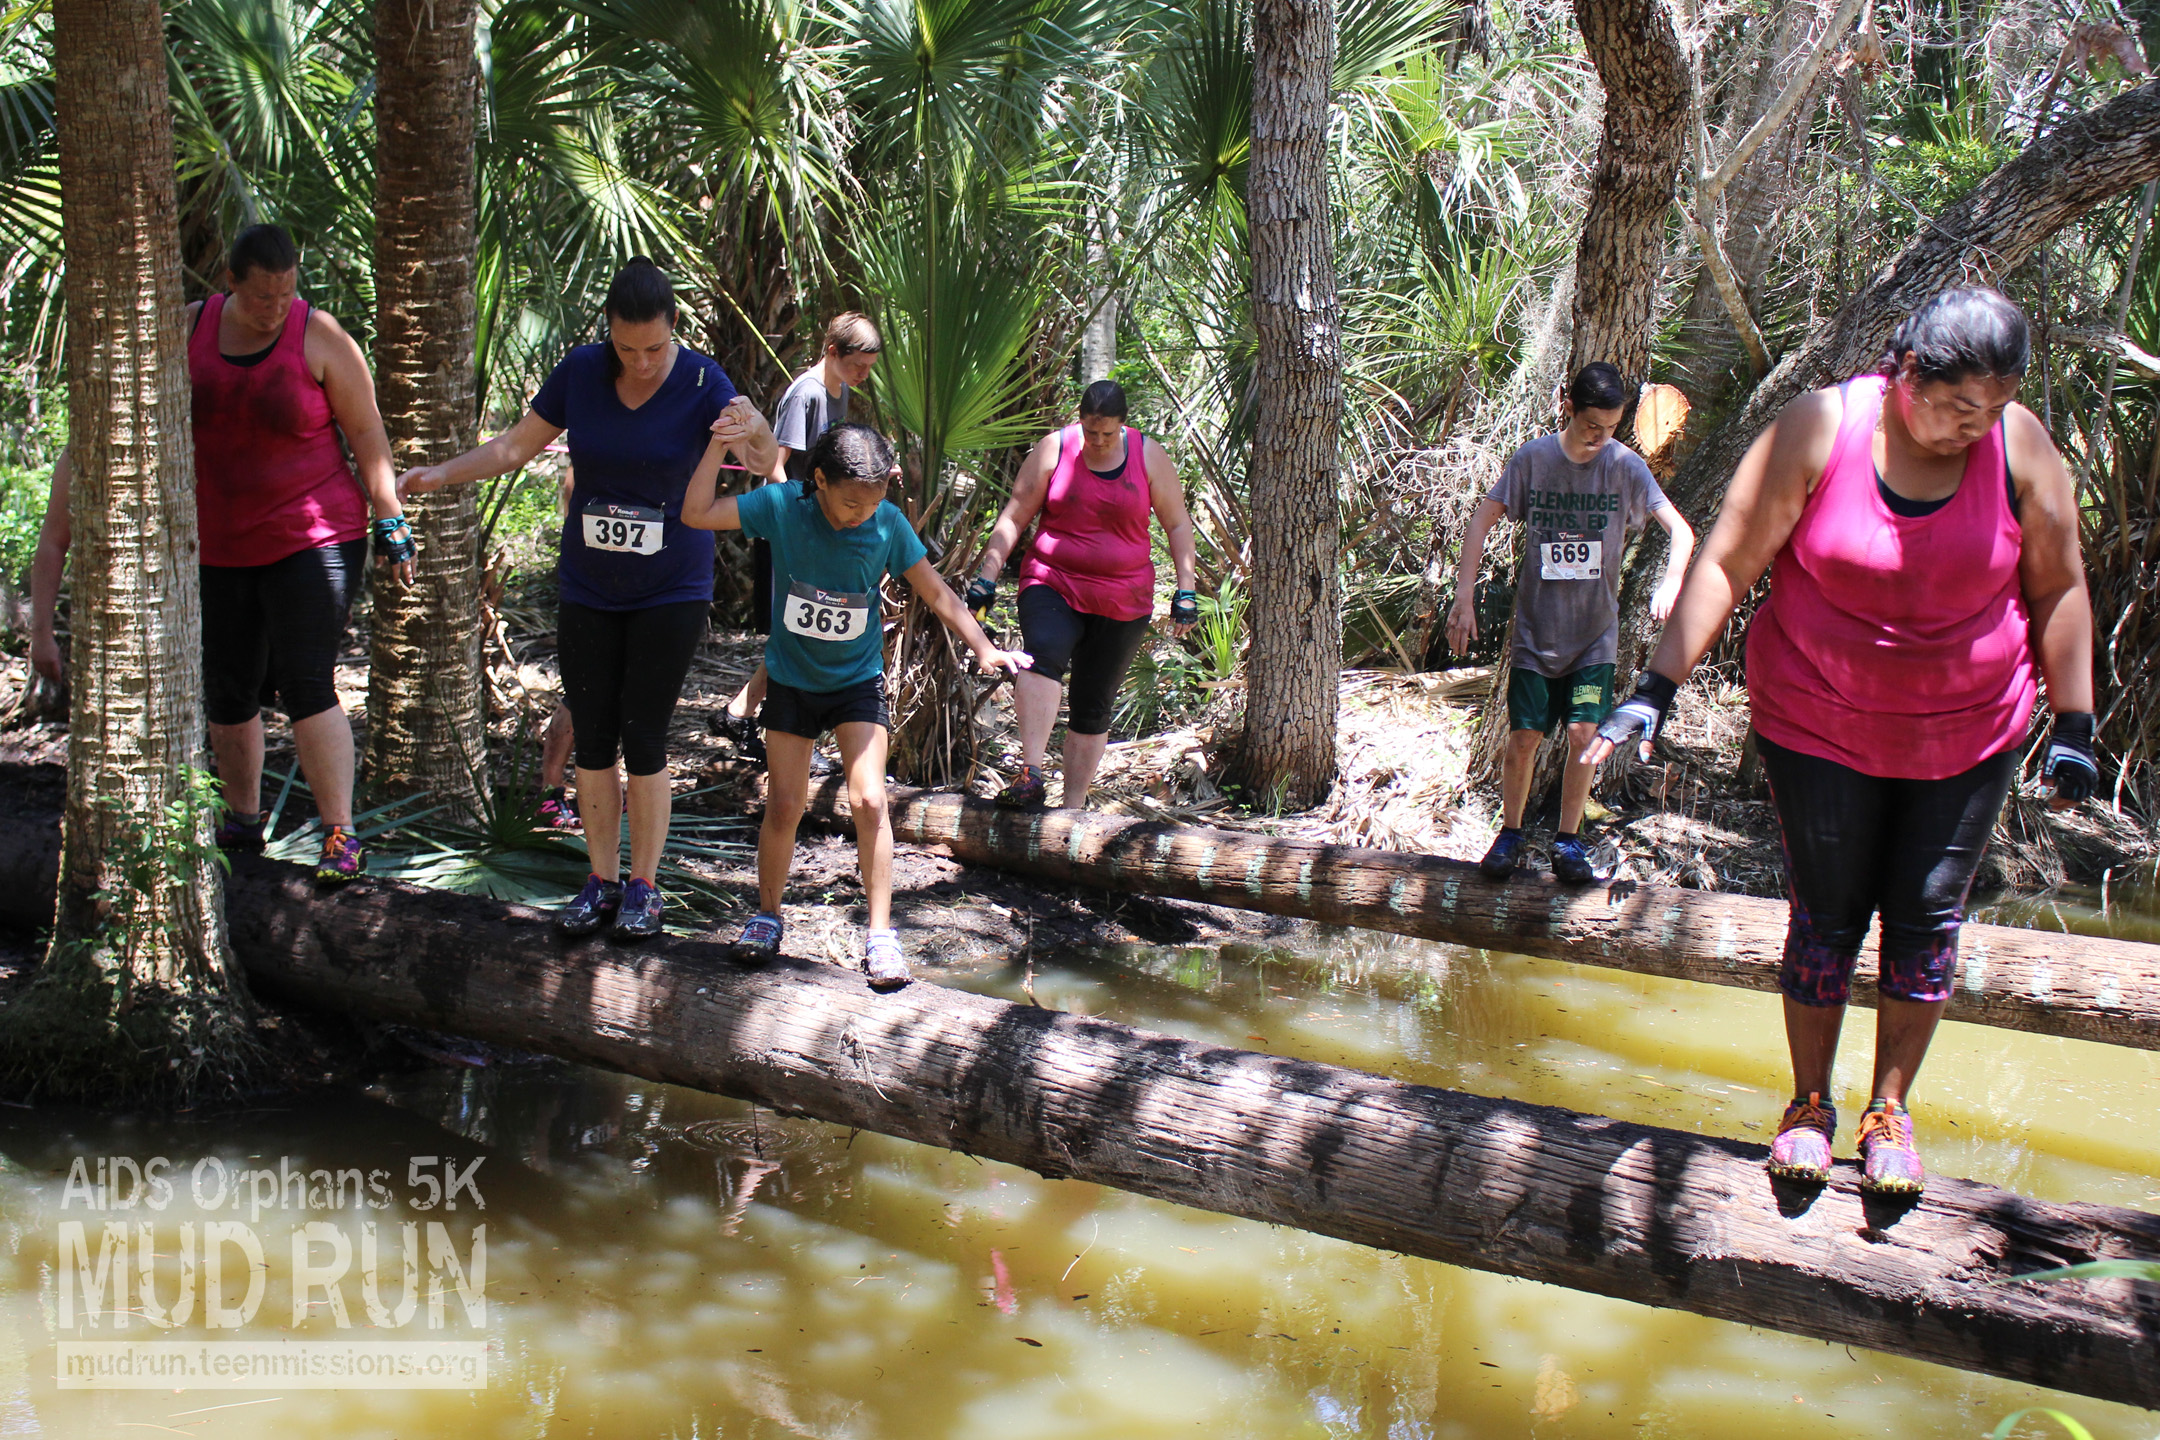 Obstacles Aids Orphans Mud Run